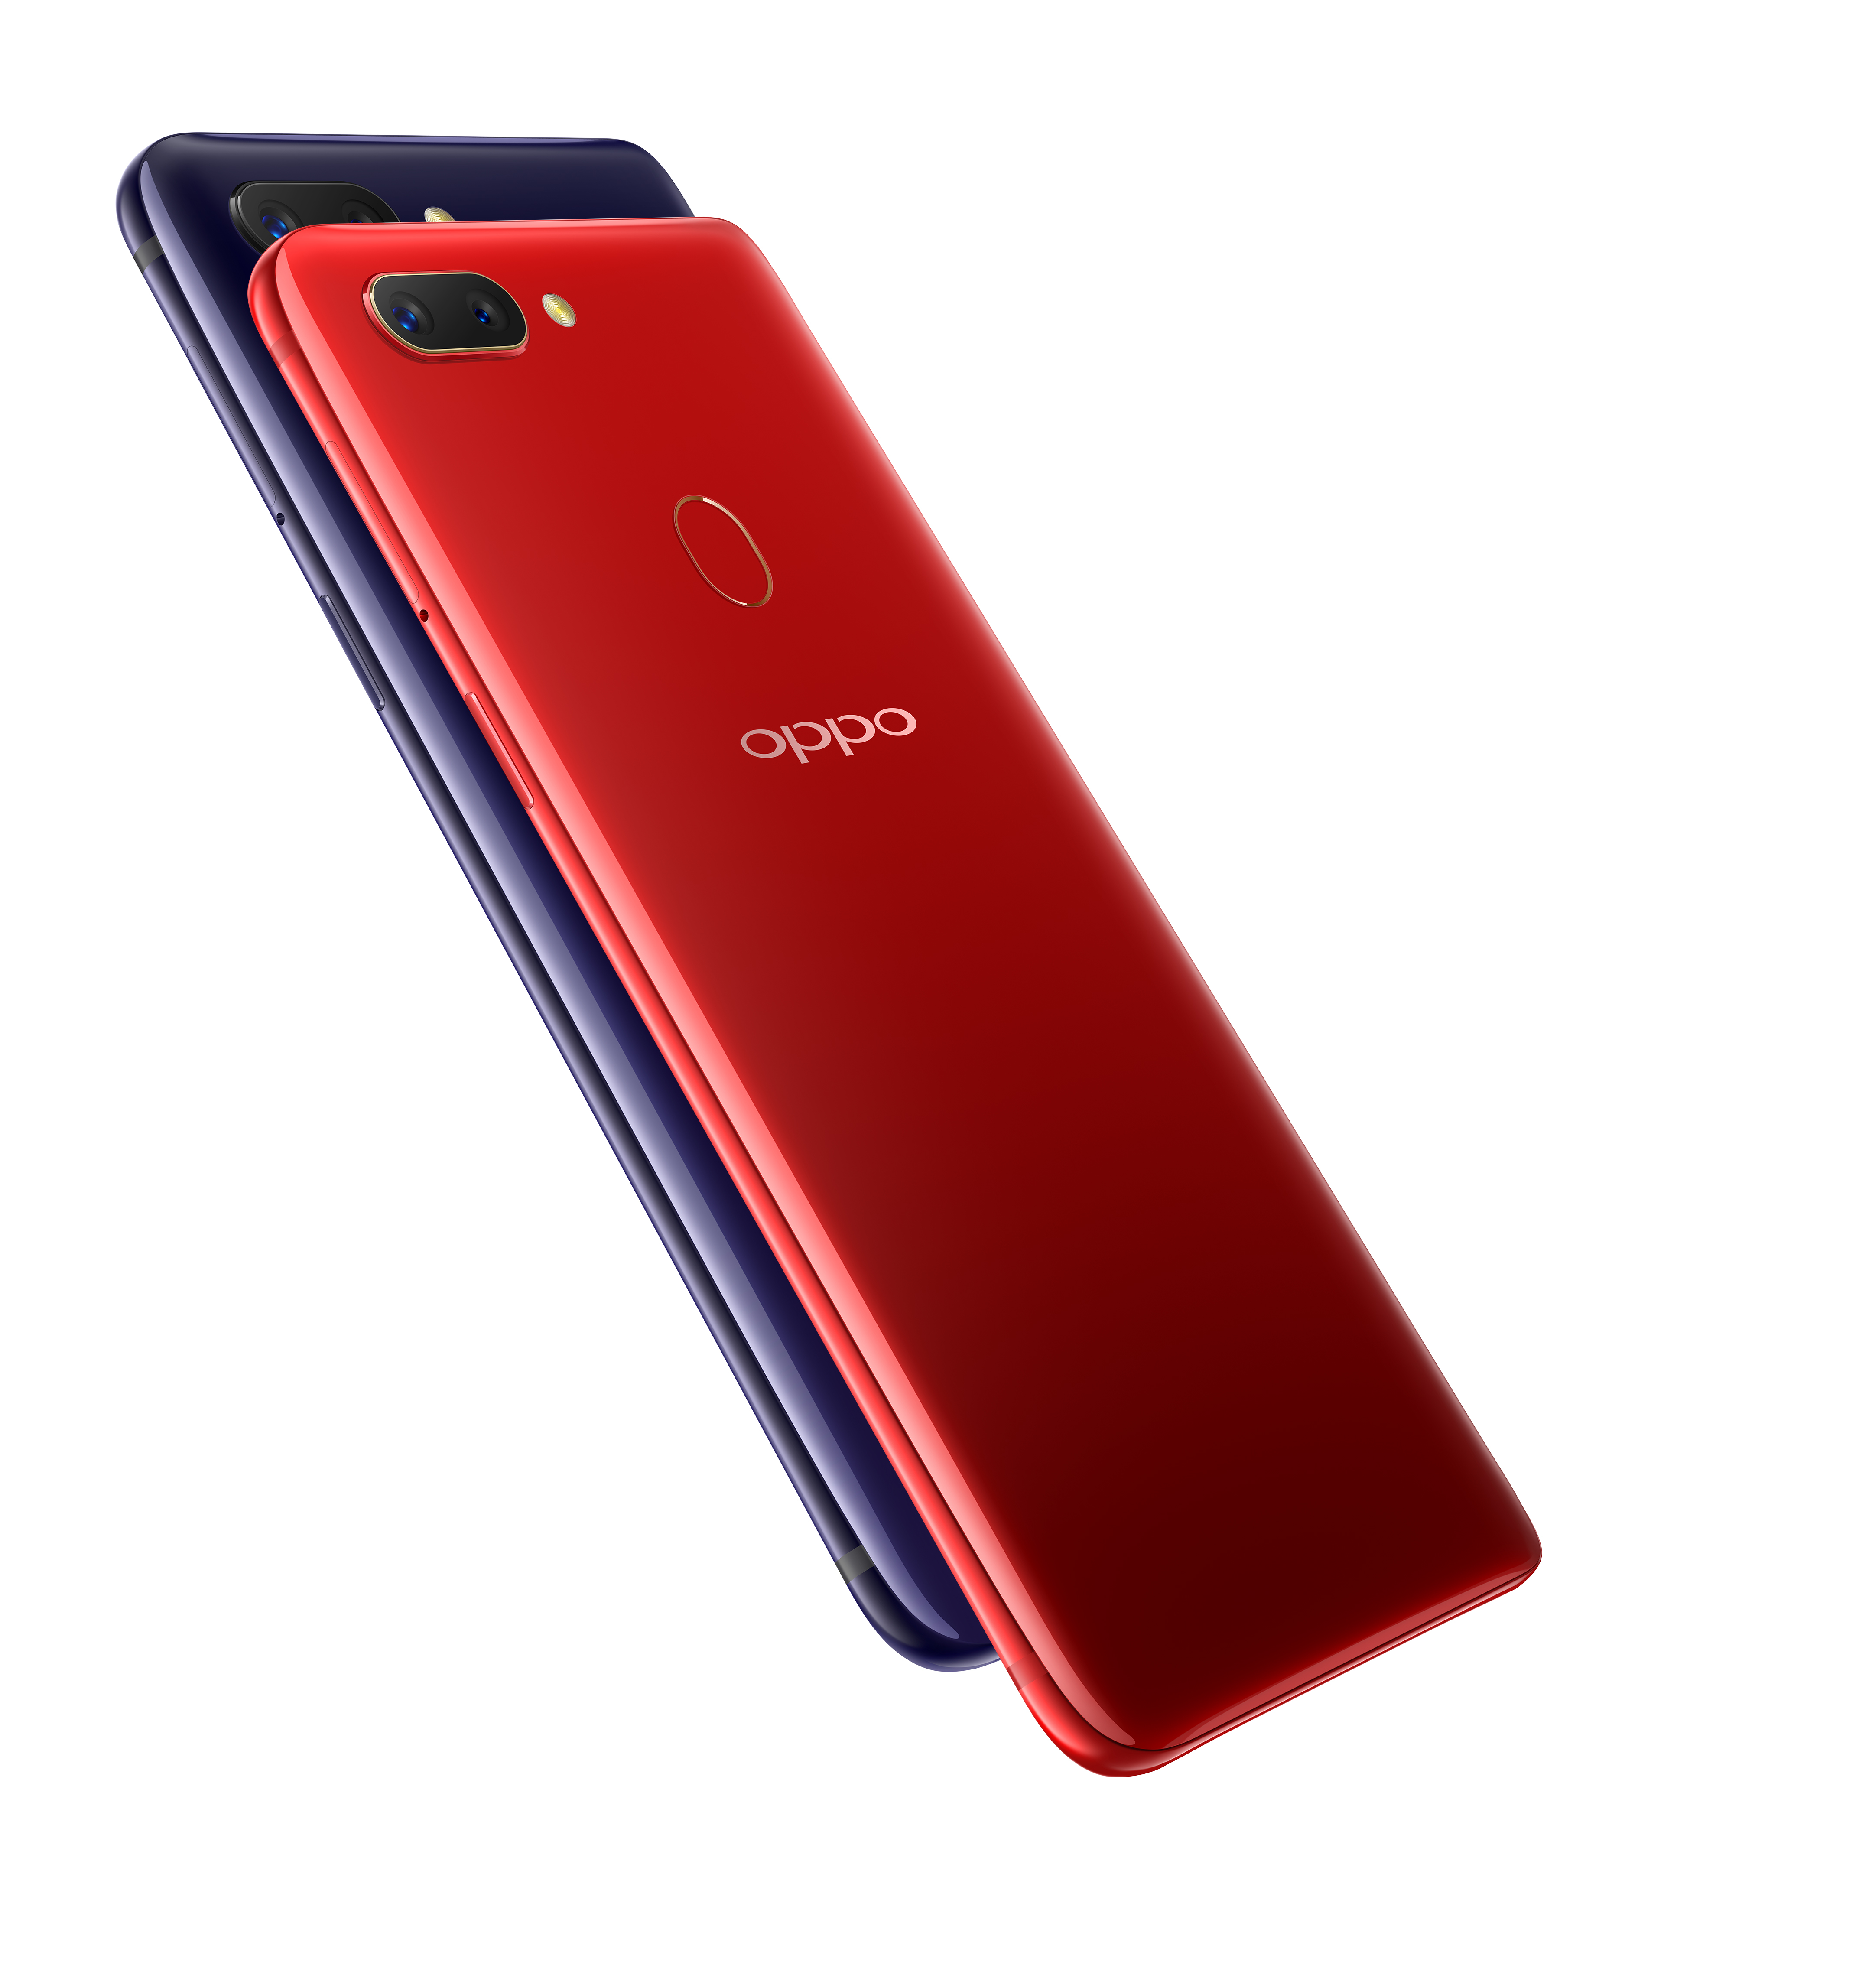 Tech Review: The Oppo R15 Pro is the Android device for